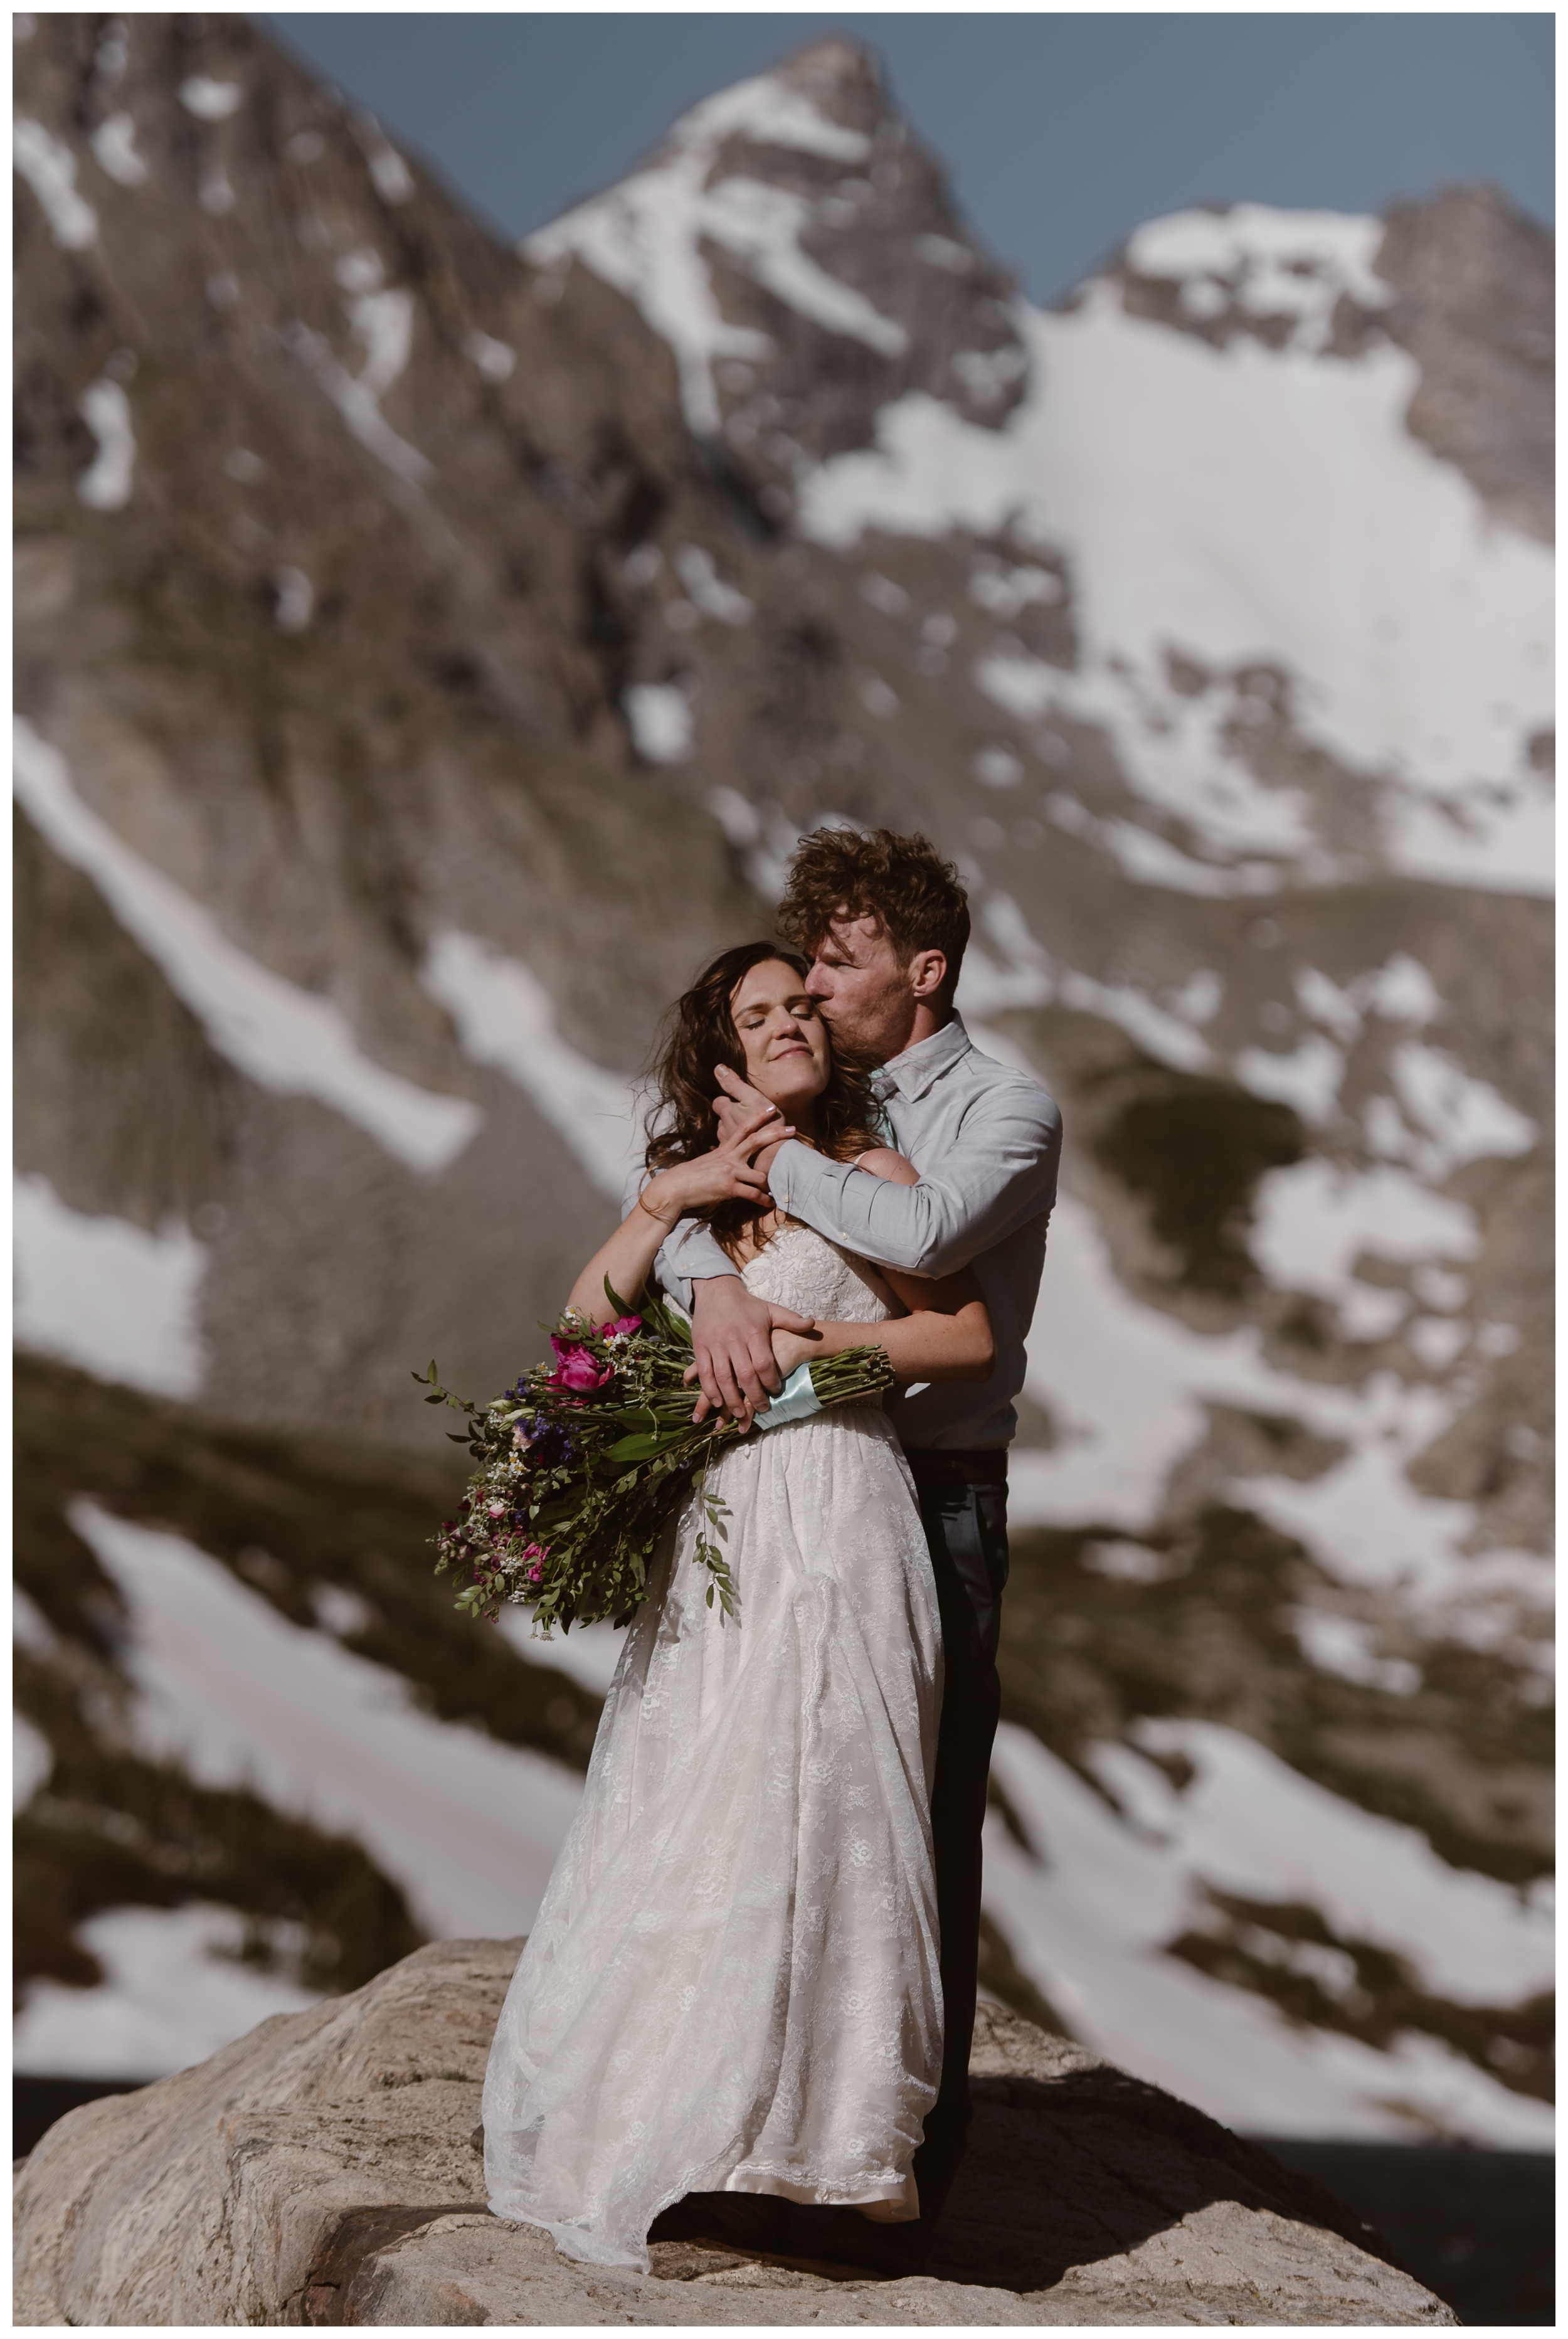 Although their first location of Rocky Mountain National Park didn't work for a high alpine lake elopement ceremony, Karen and Matt were able to use Lake Isabelle outside Nederland, Colorado as a back up. Photo by Adventure Instead, Maddie Mae.